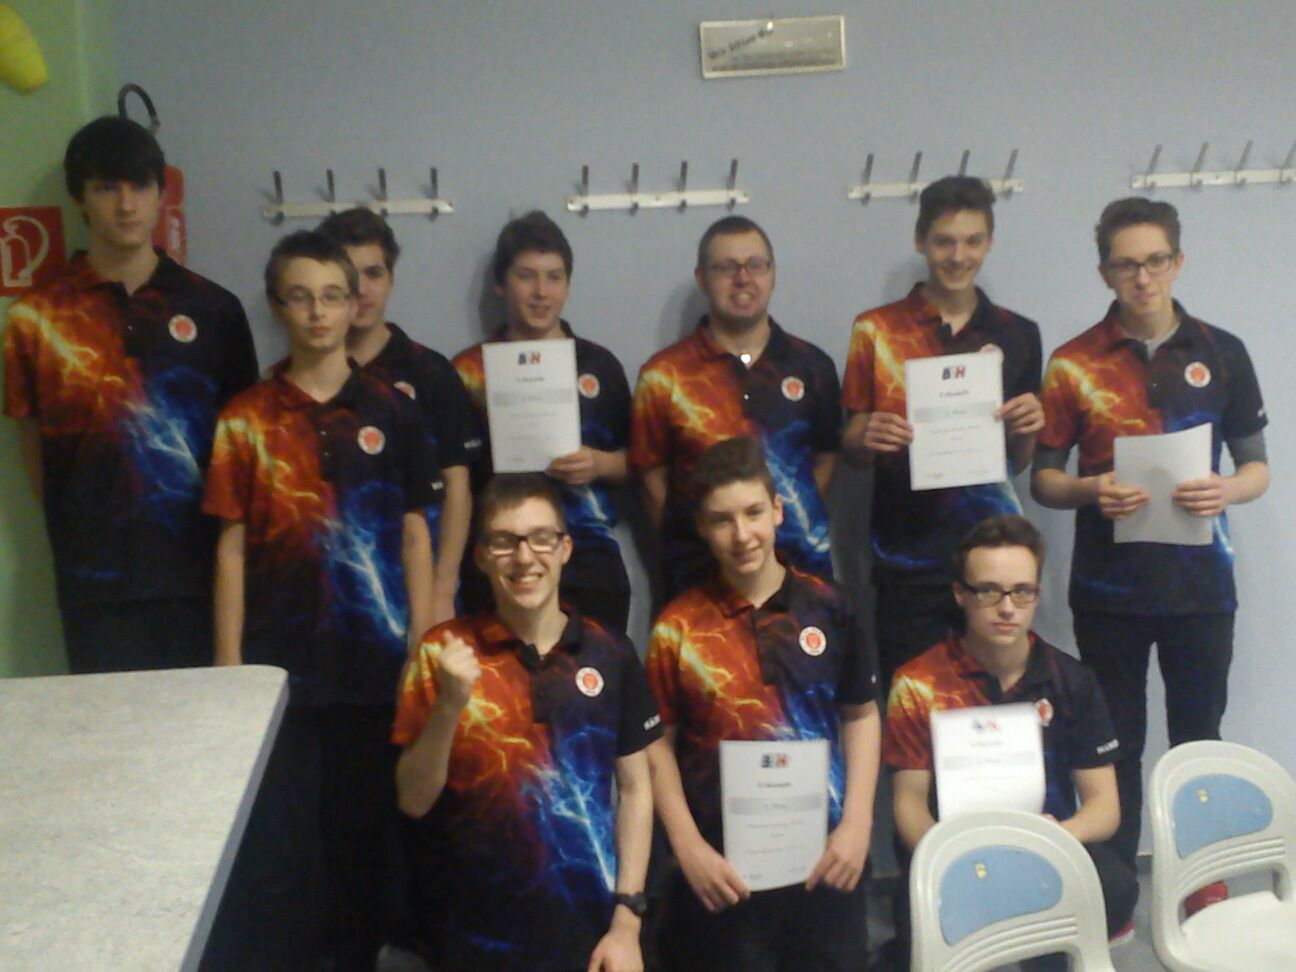 Artikelbild Bowlingjugend: Striking Underdogs 1 Vizemeister!